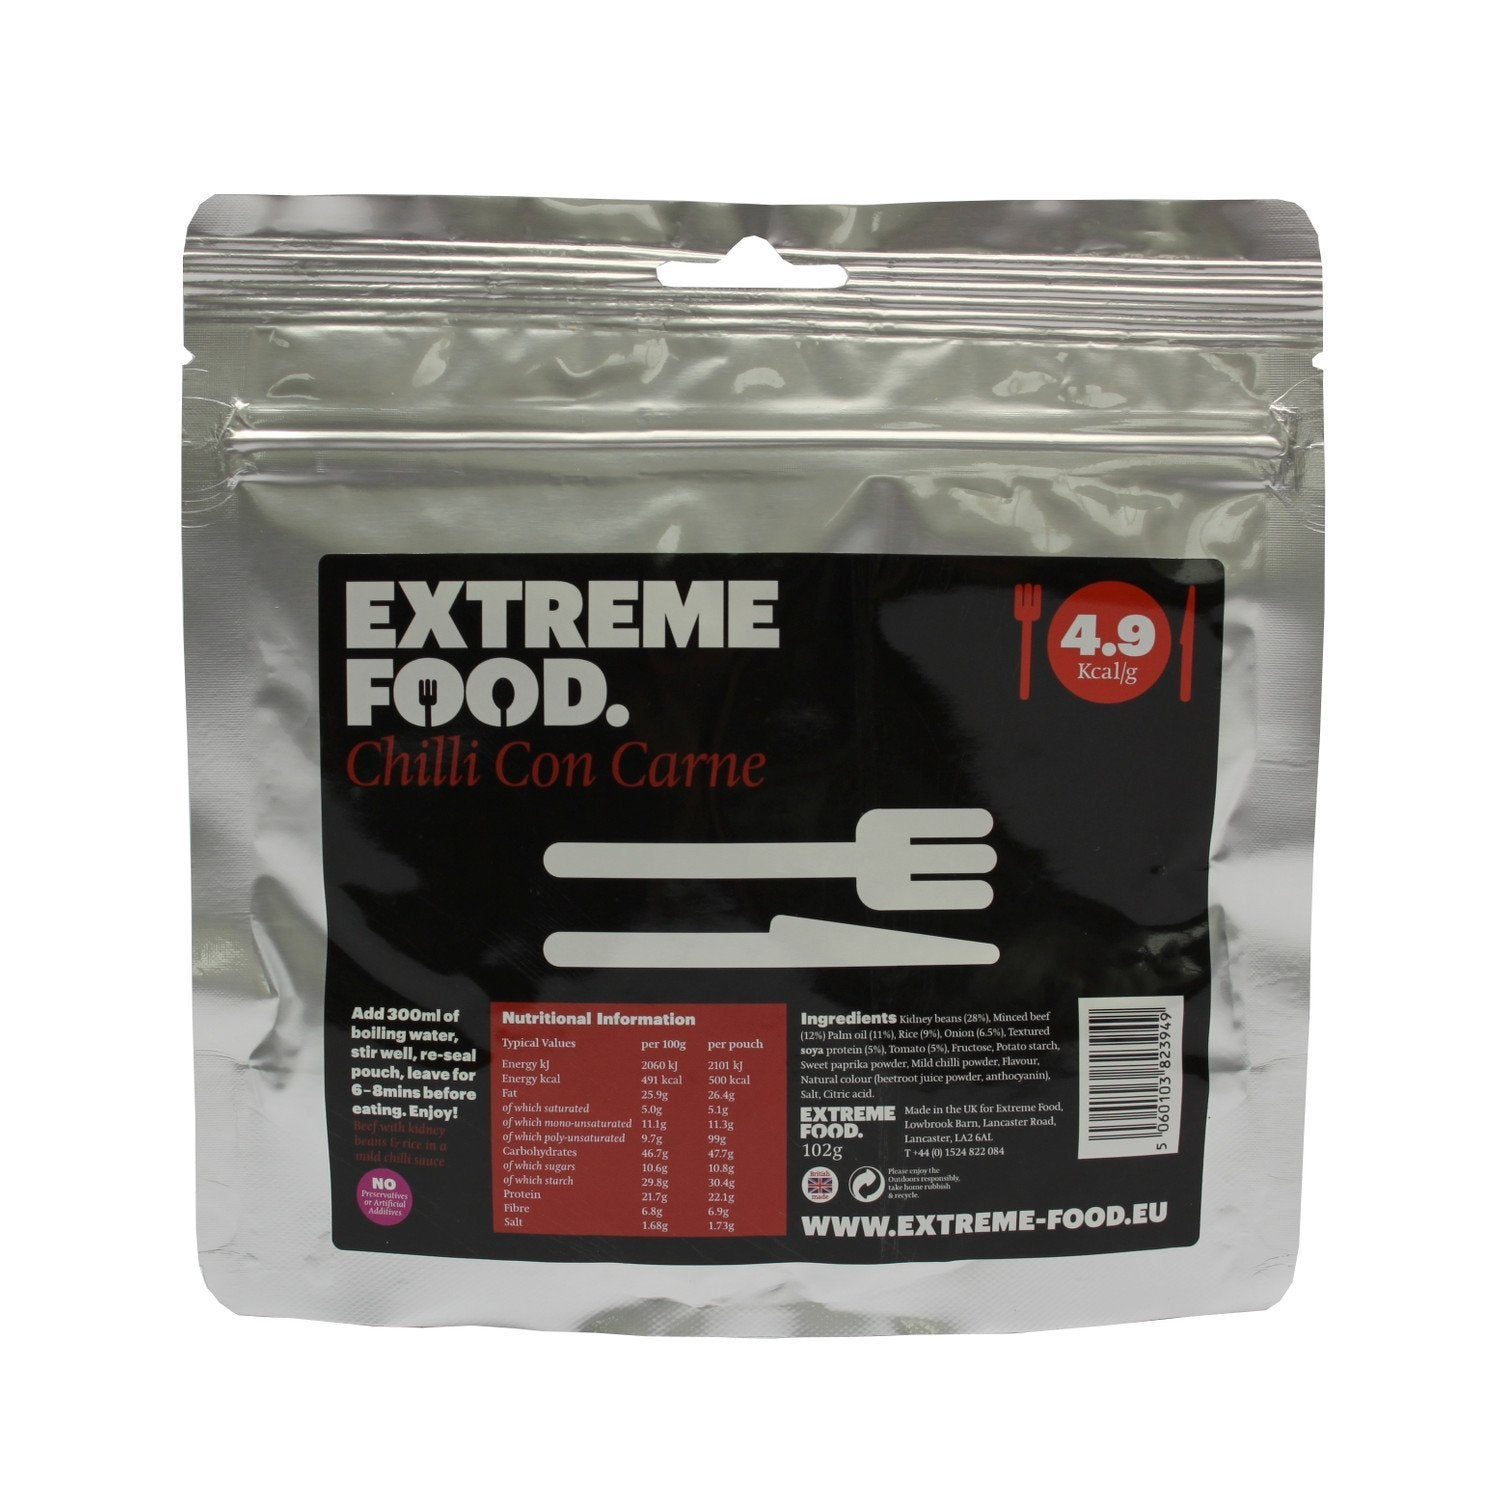 Extreme Food Chilli Con Carne, dried expedition food pack